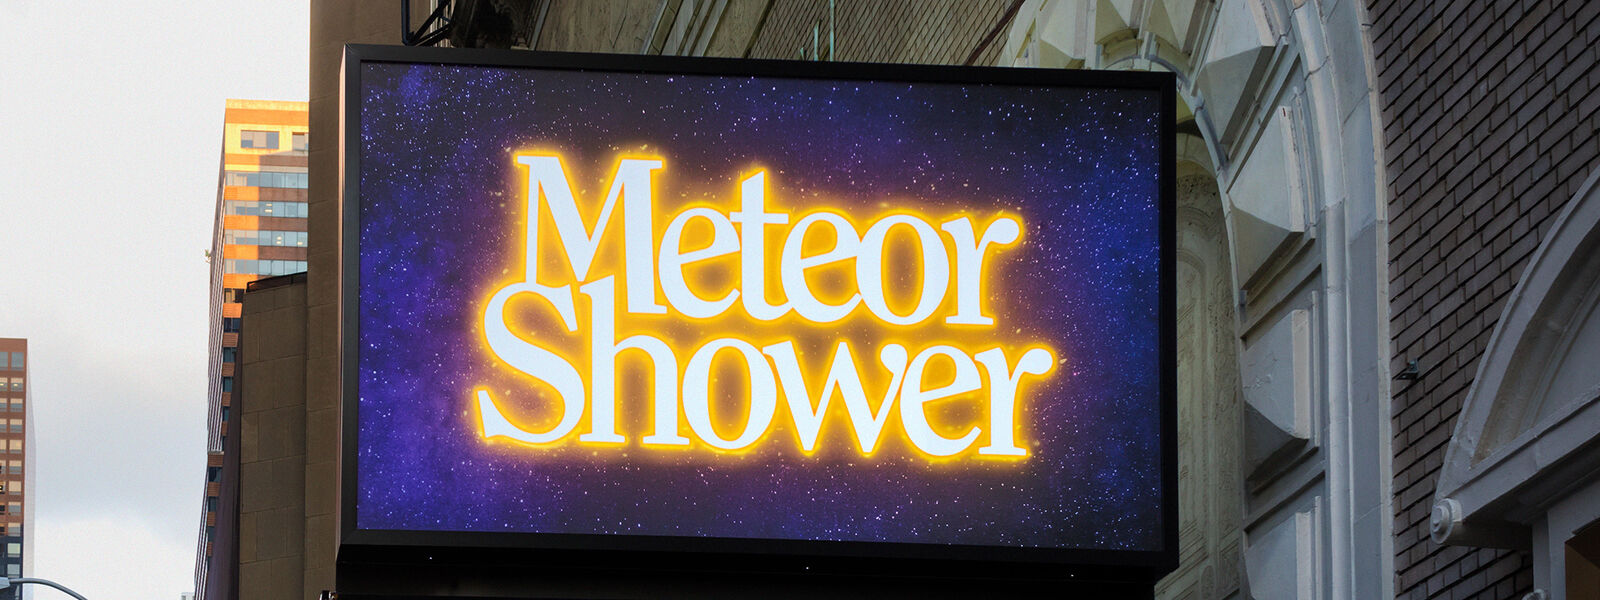 Meteor Shower New York